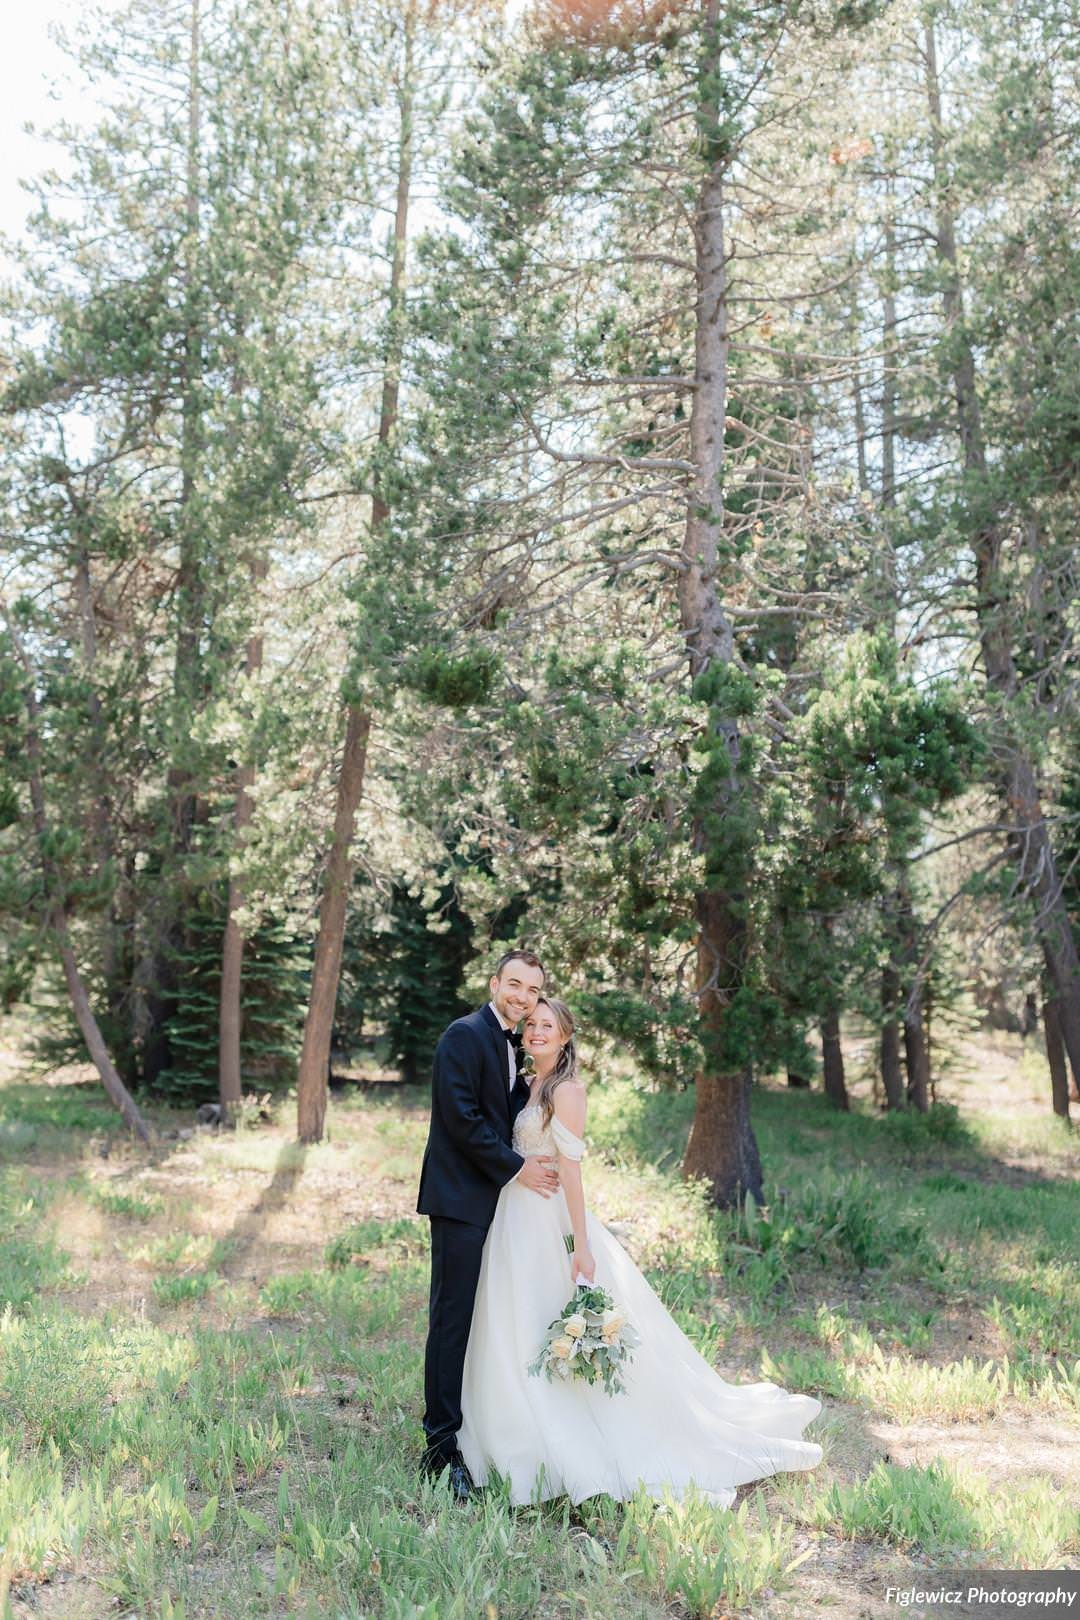 Garden_Tinsley_FiglewiczPhotography_LakeTahoeWeddingSquawValleyCreekTaylorBrendan00073_big